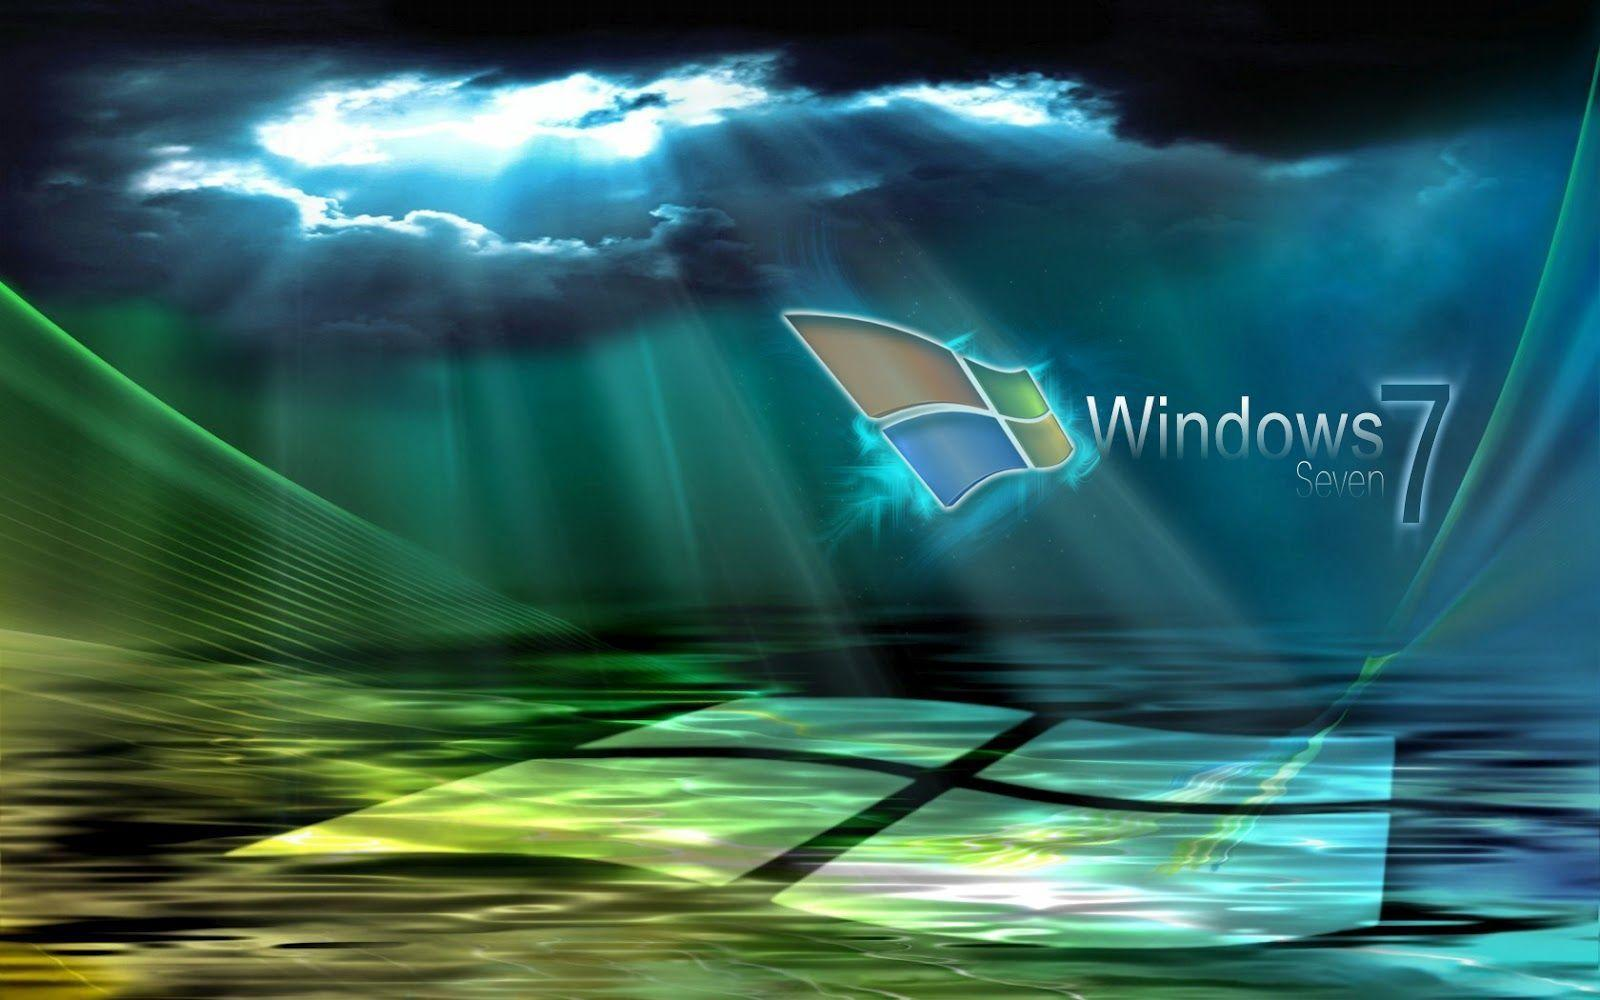 Live Wallpaper Of Love For Pc : Free Wallpapers For Pc Windows 7 - Wallpaper cave